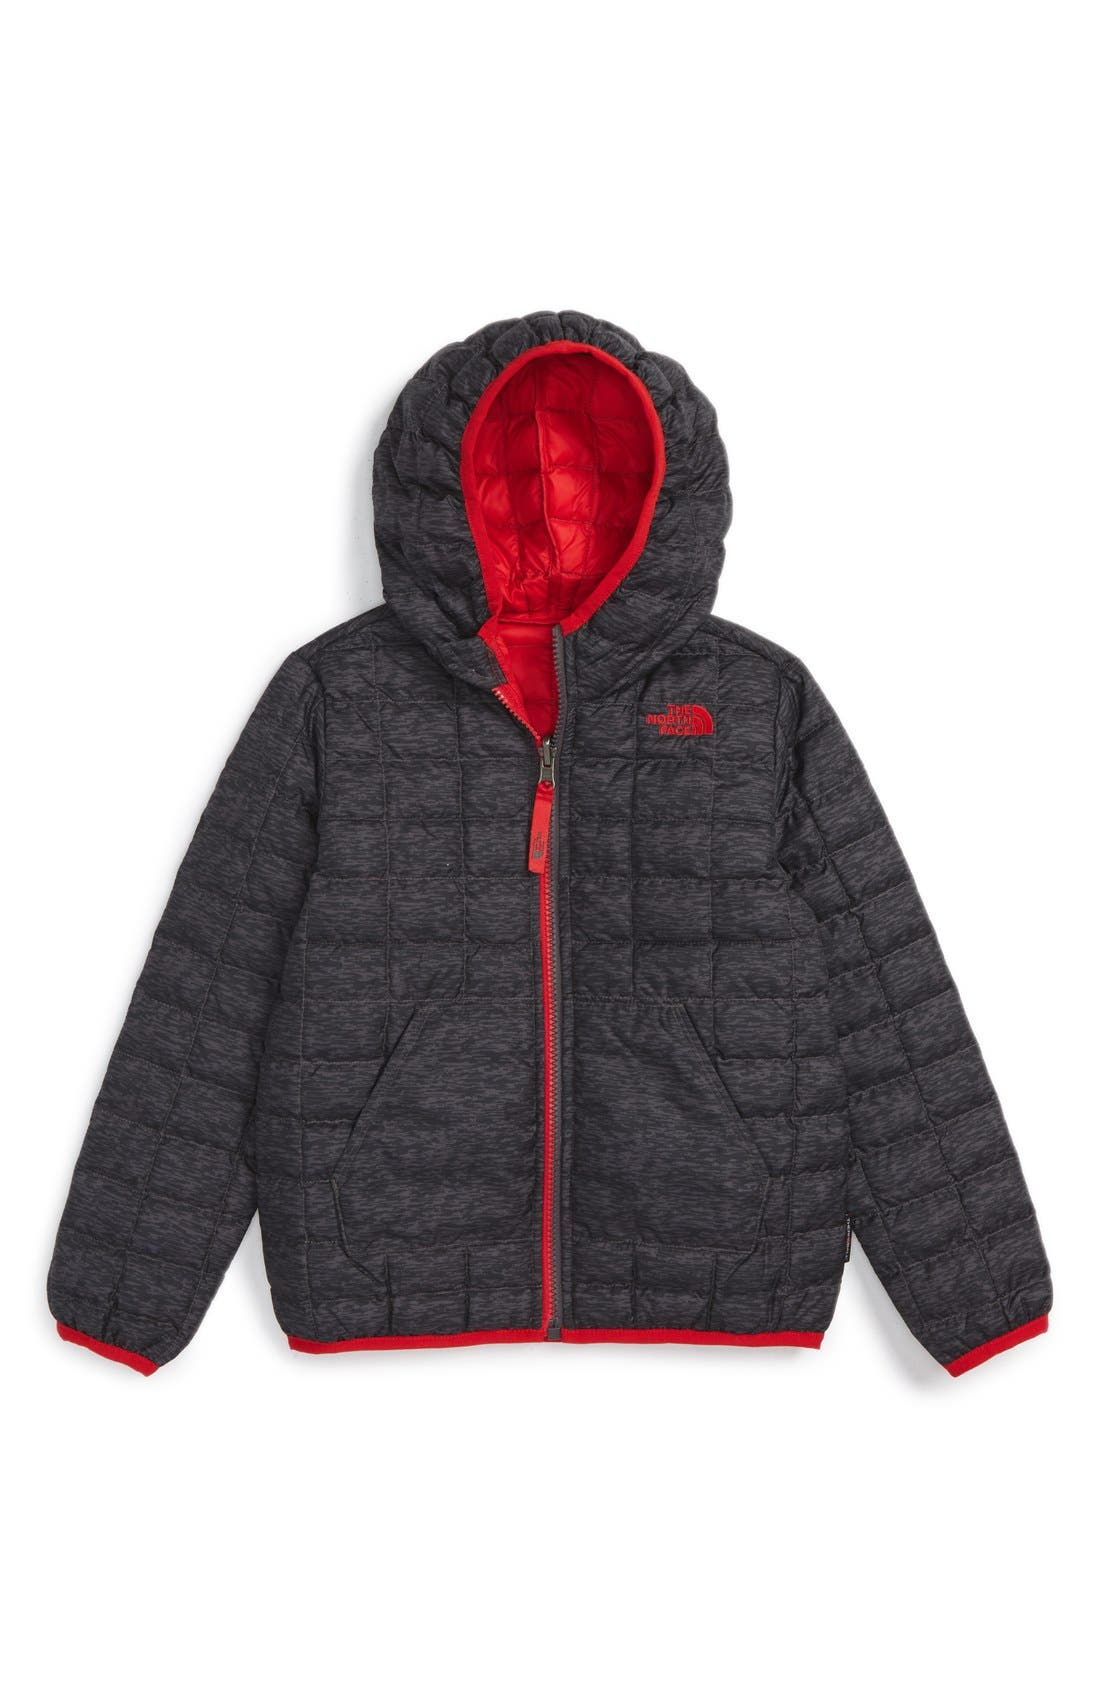 Main Image - The North Face ThermoBall™ PrimaLoft® Reversible Hooded Jacket (Toddler Boys & Little Boys)